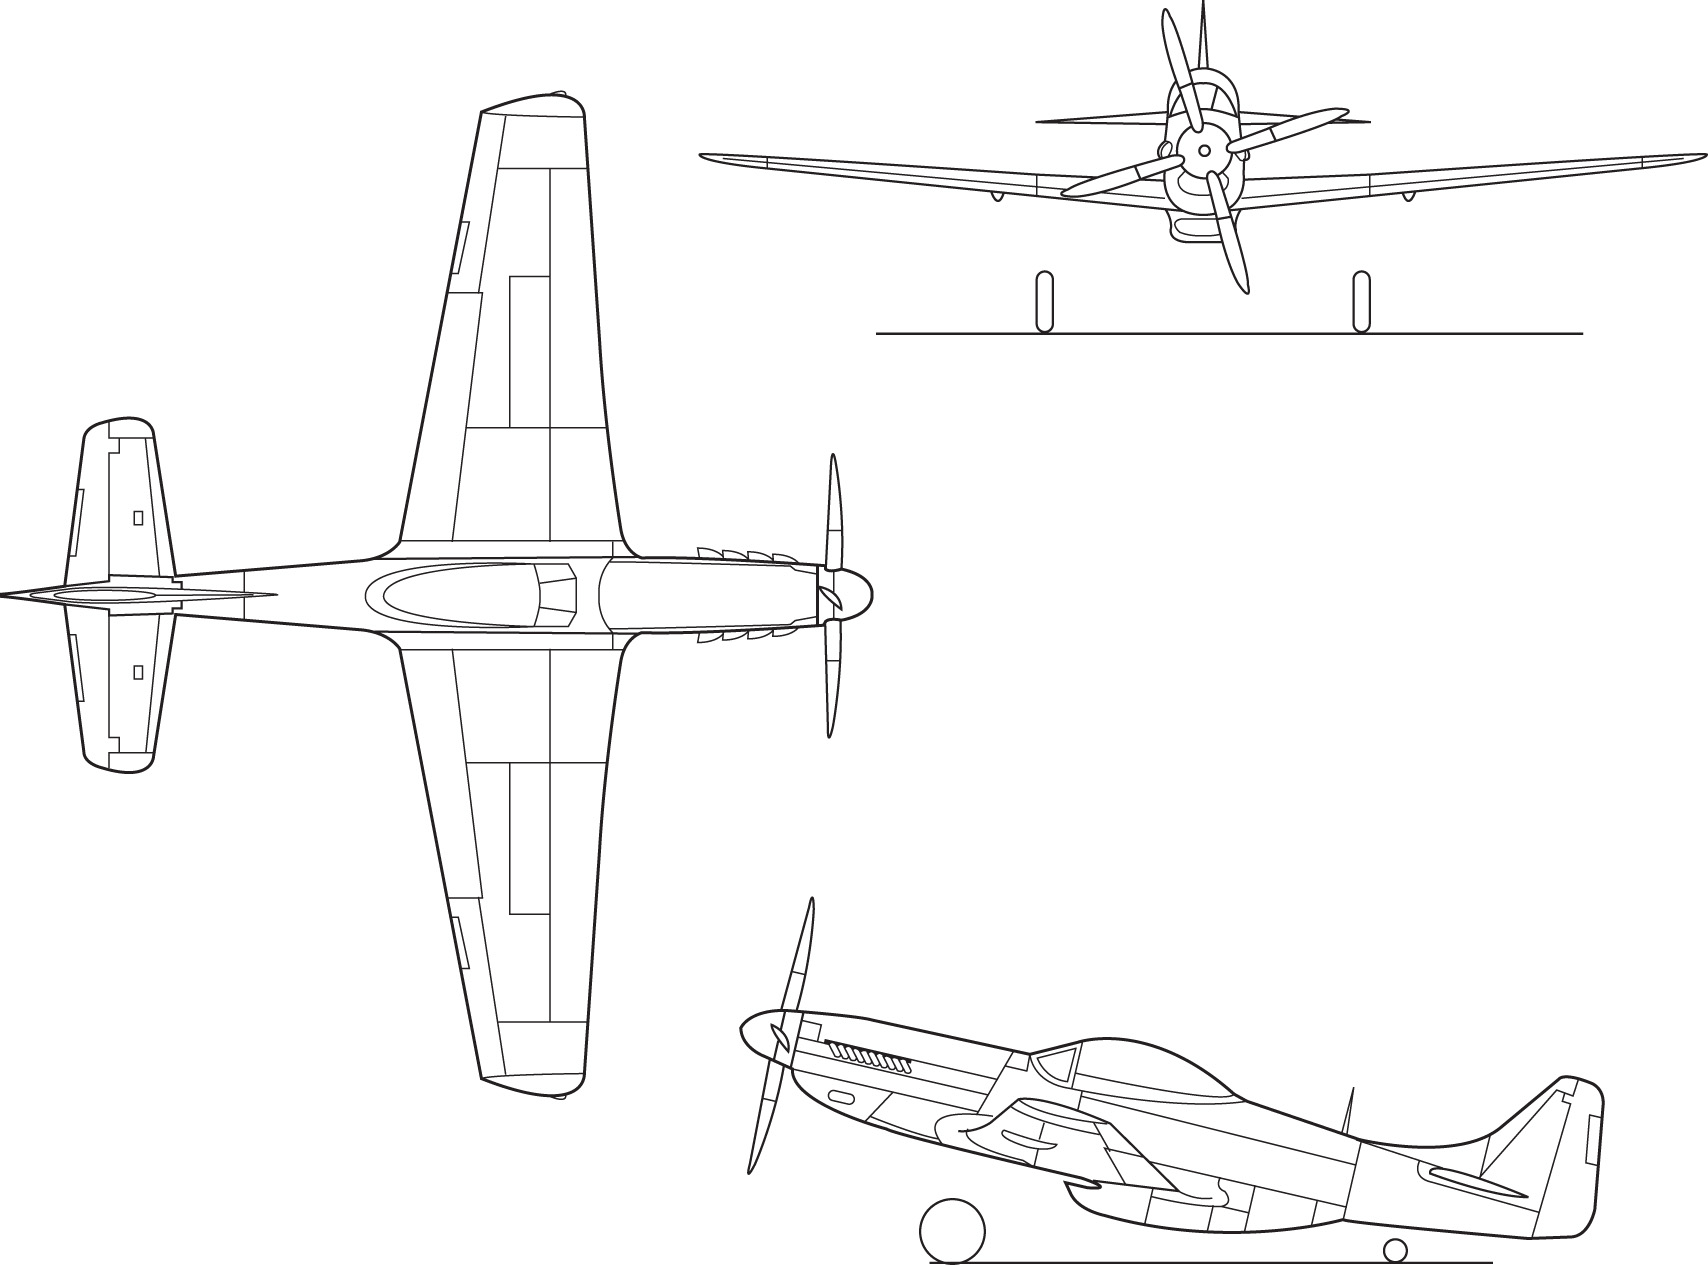 P 51 Mustang 3 View Drawings http://es.wikipedia.org/wiki/Archivo:North_American_P-51D_Mustang_line_drawing.png